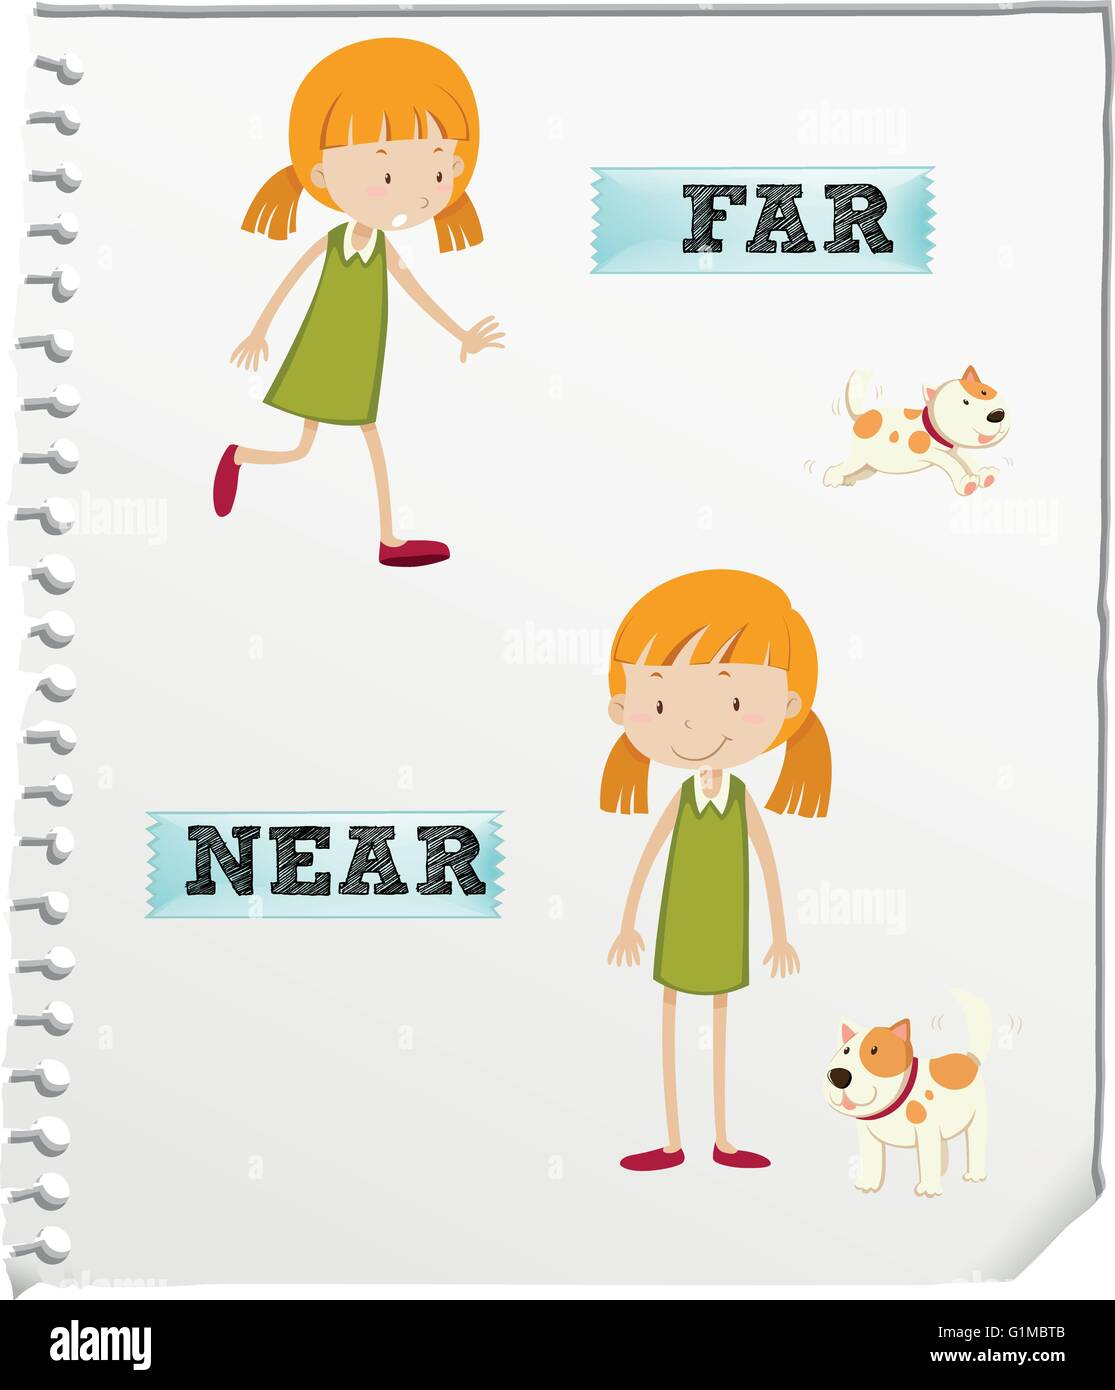 Opposite Adjectives Far And Near Illustration Stock Vector